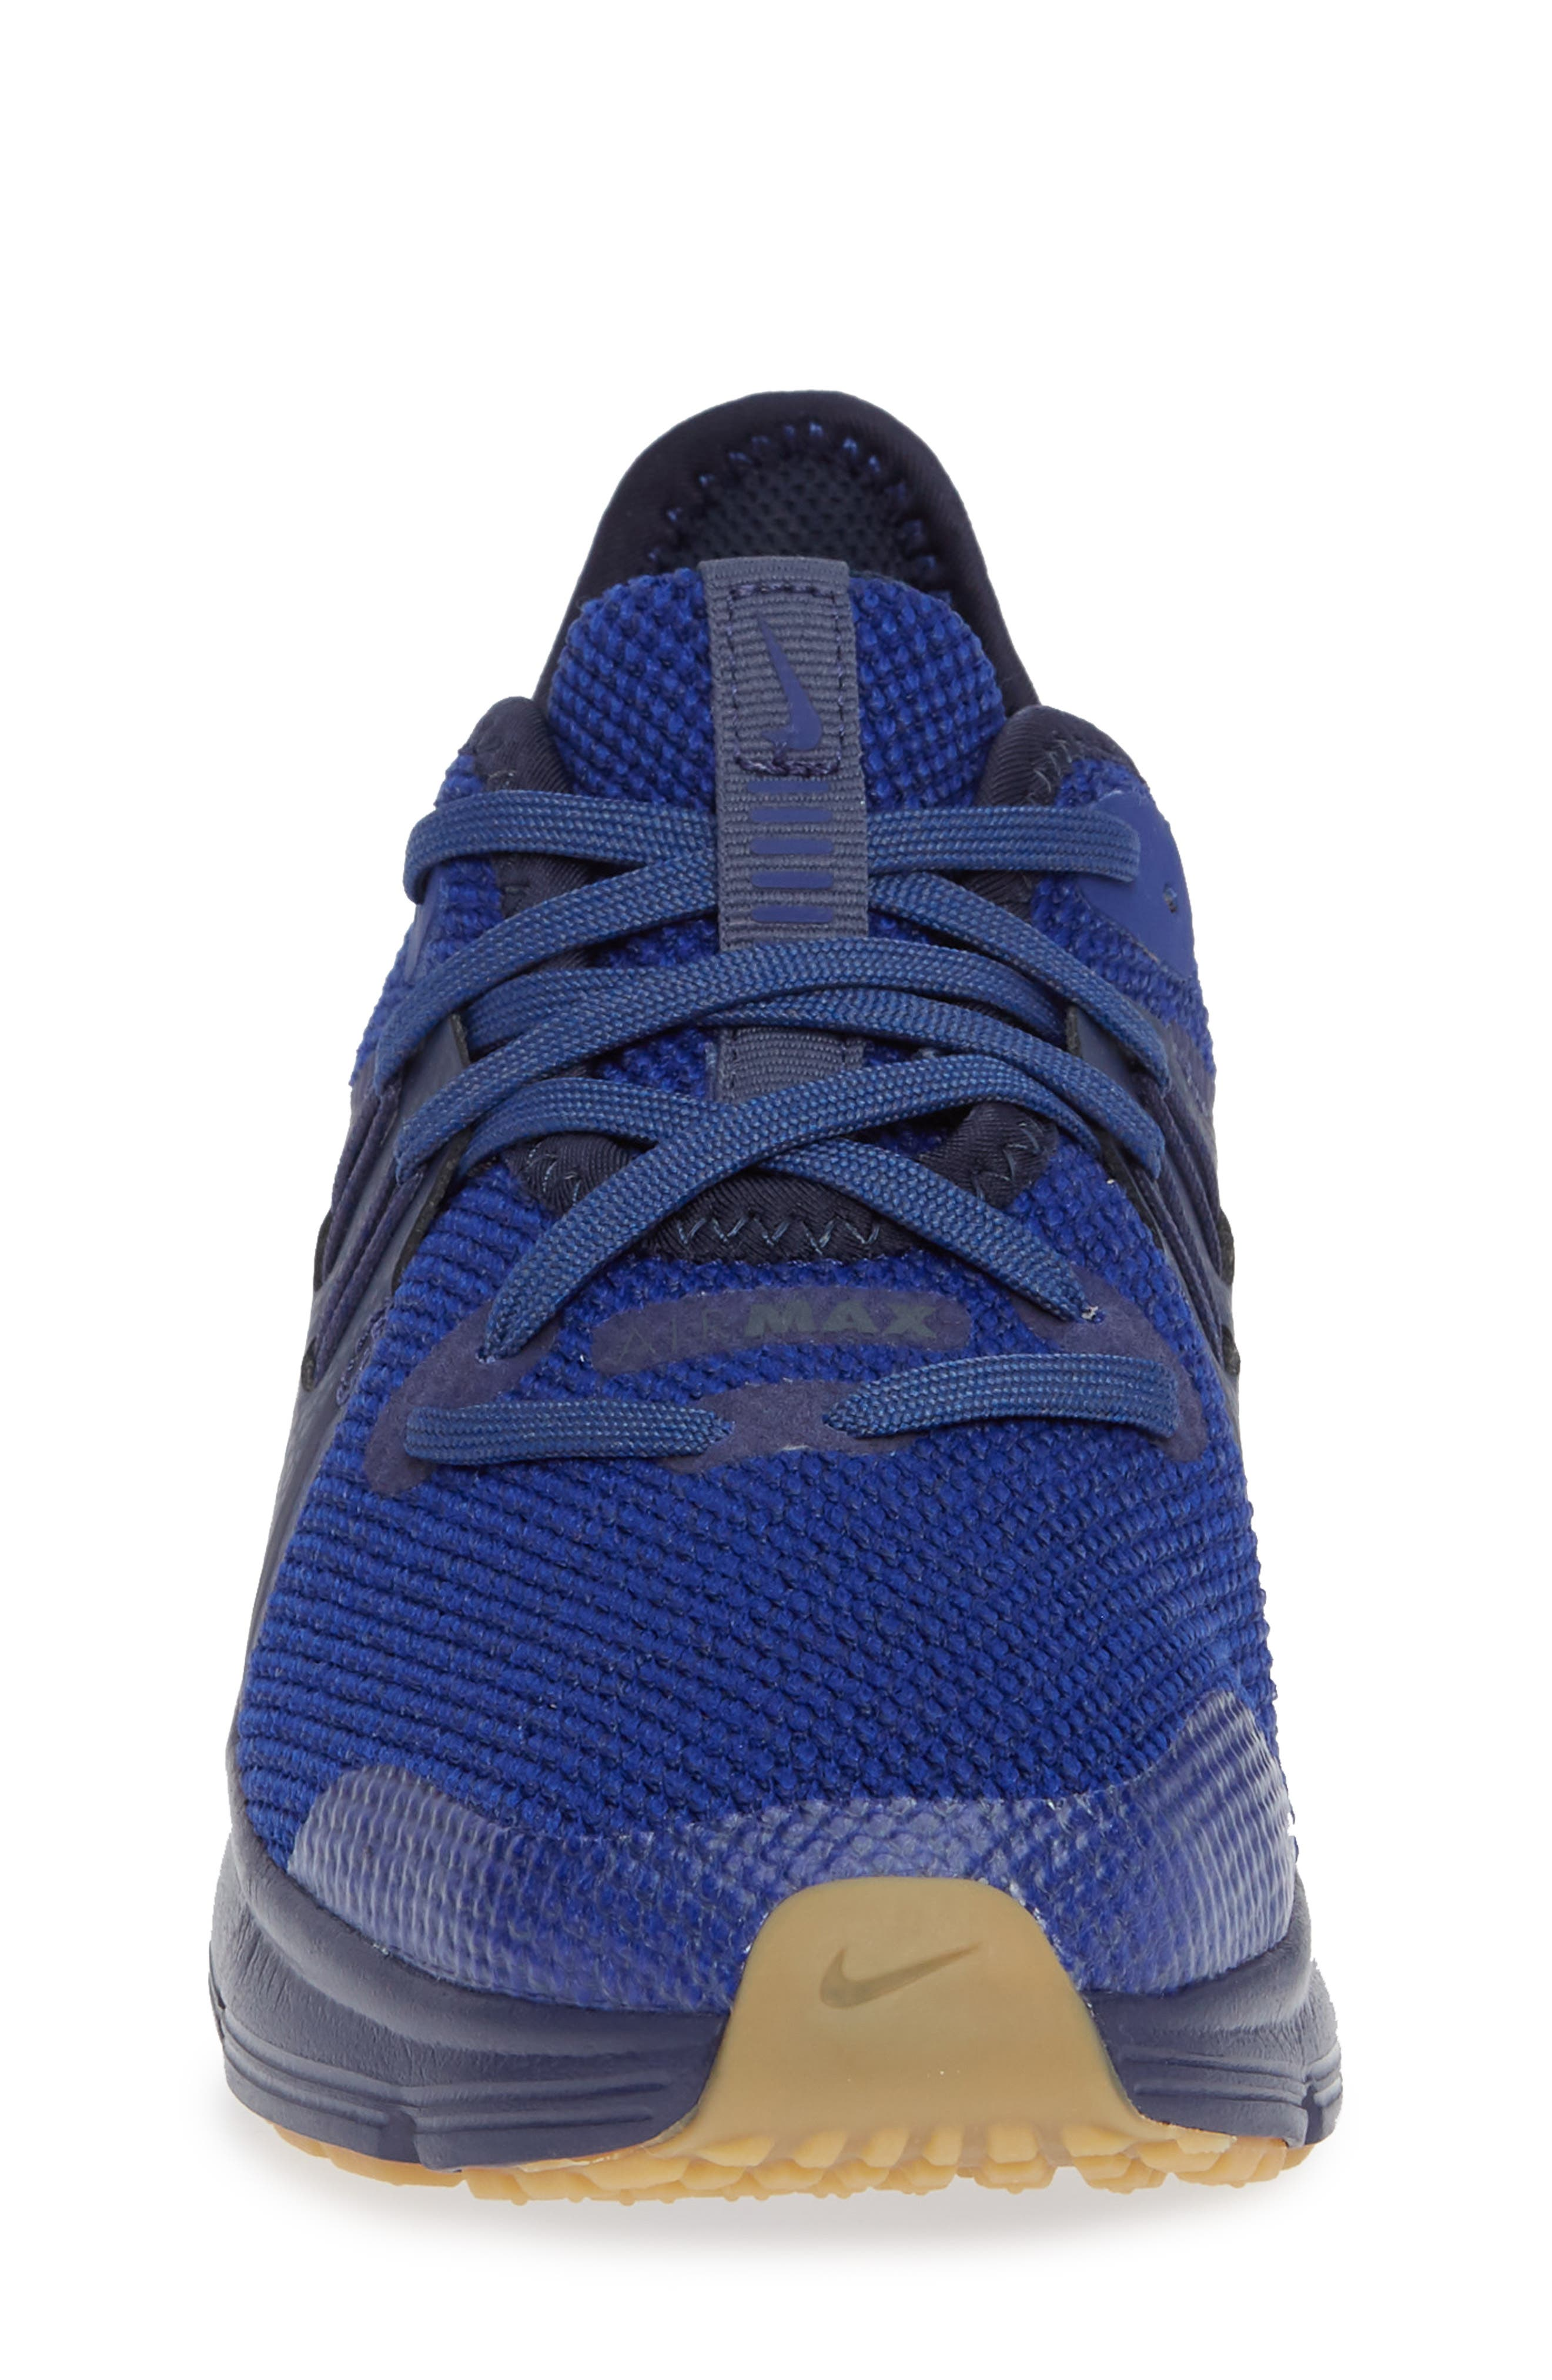 Air Max Sequent 3 GS Running Shoe,                             Alternate thumbnail 4, color,                             Obsidian/ Blue/ Indigo